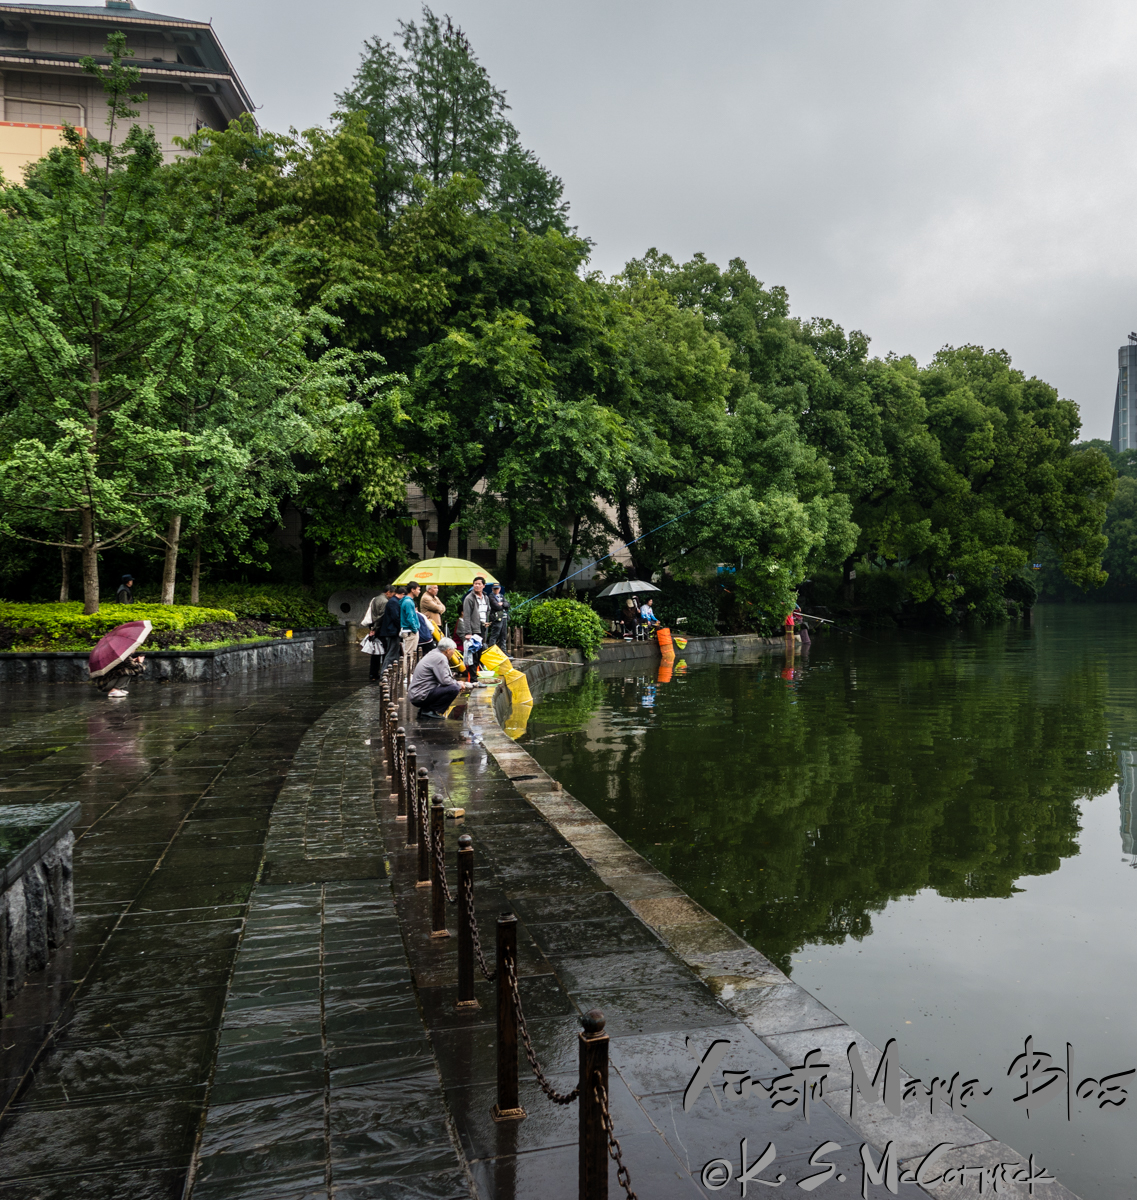 People with umbrellas fishing in the lake in Guilin, China.